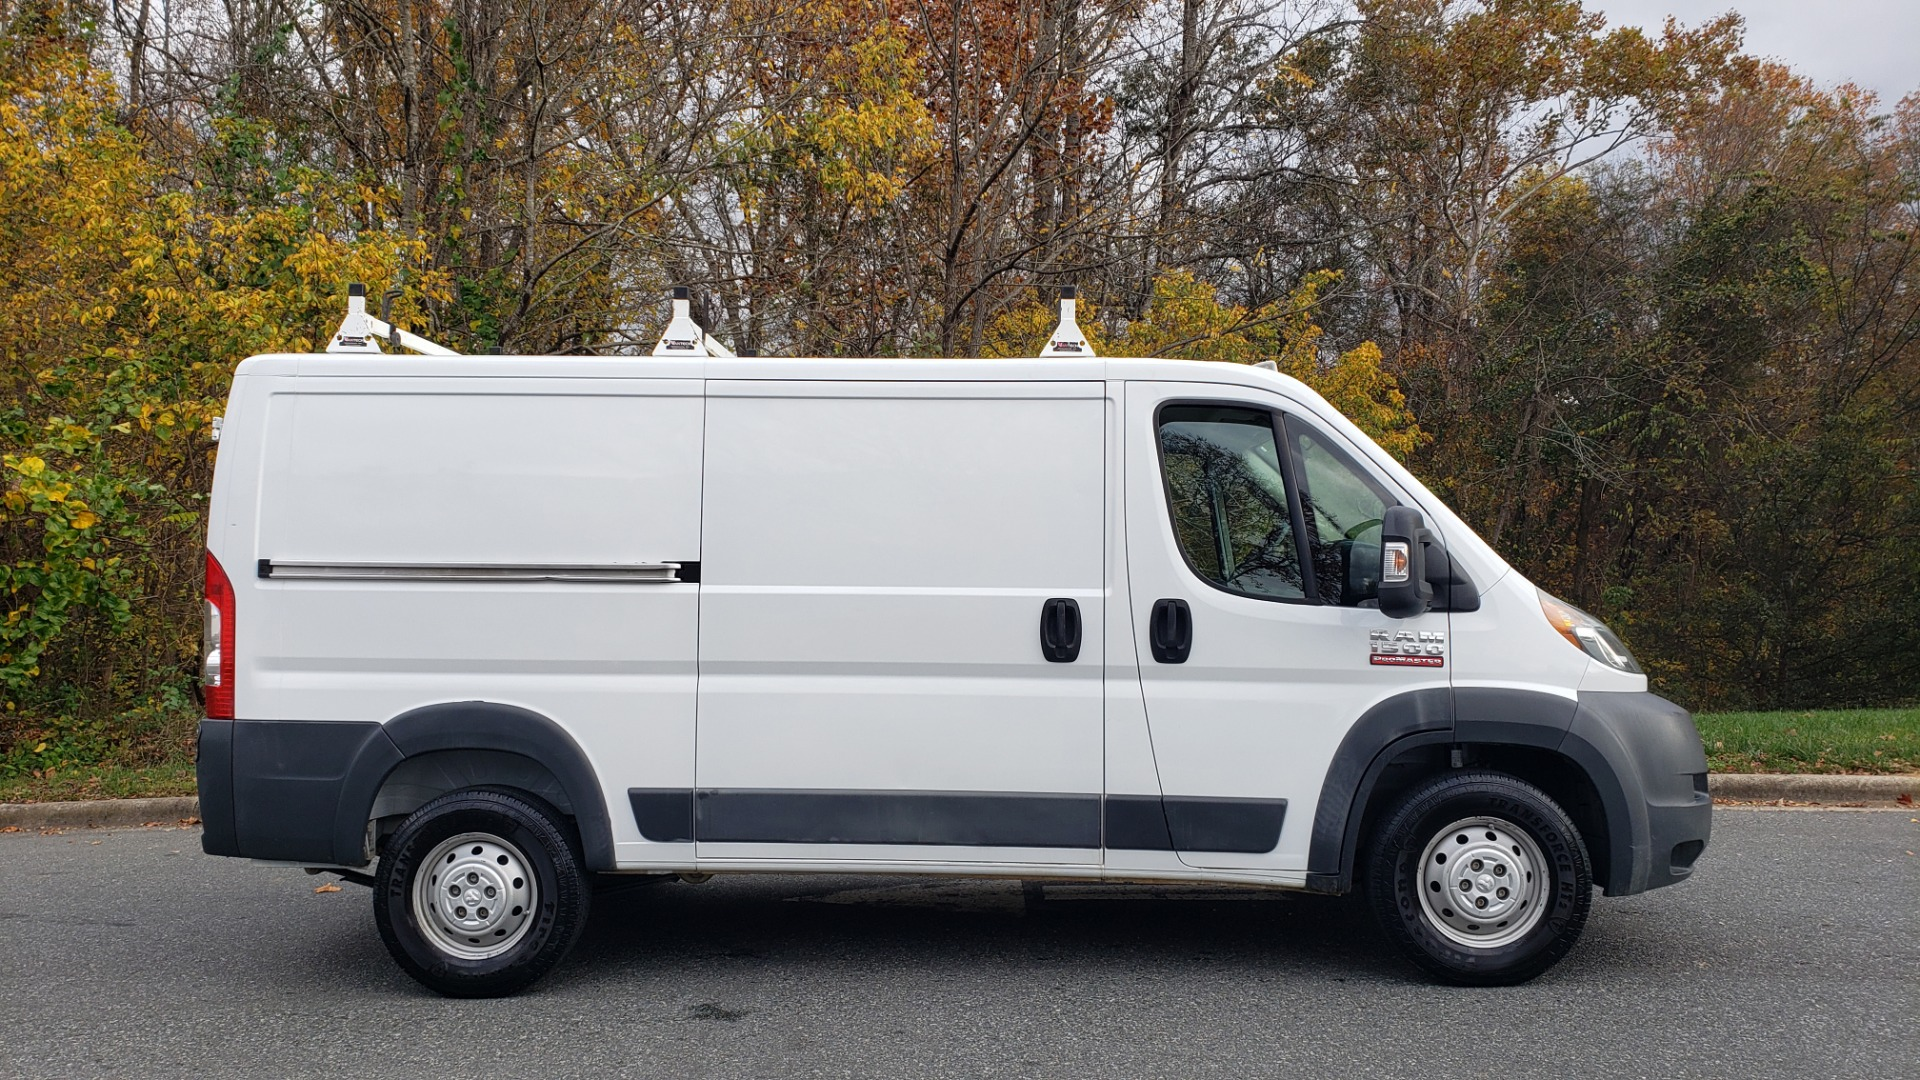 Used 2015 Ram PROMASTER CARGO VAN 136-INCH WB / LOW ROOF / LADDER RACK / INSIDE RACKS for sale $16,995 at Formula Imports in Charlotte NC 28227 5